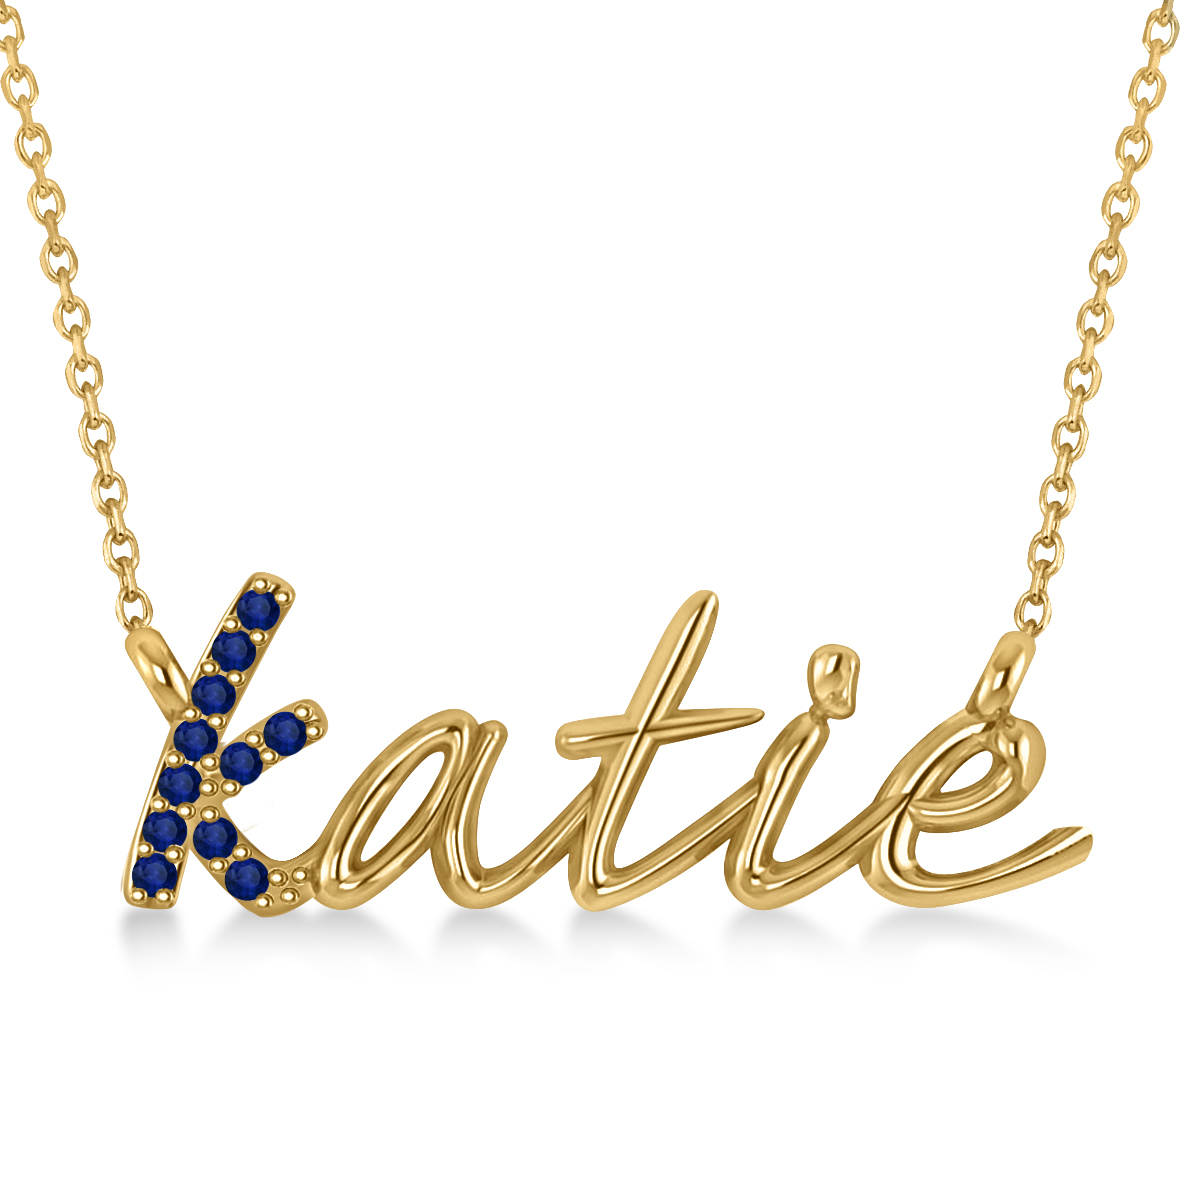 Personalized Blue Sapphire Nameplate Pendant Necklace 14k Yellow Gold